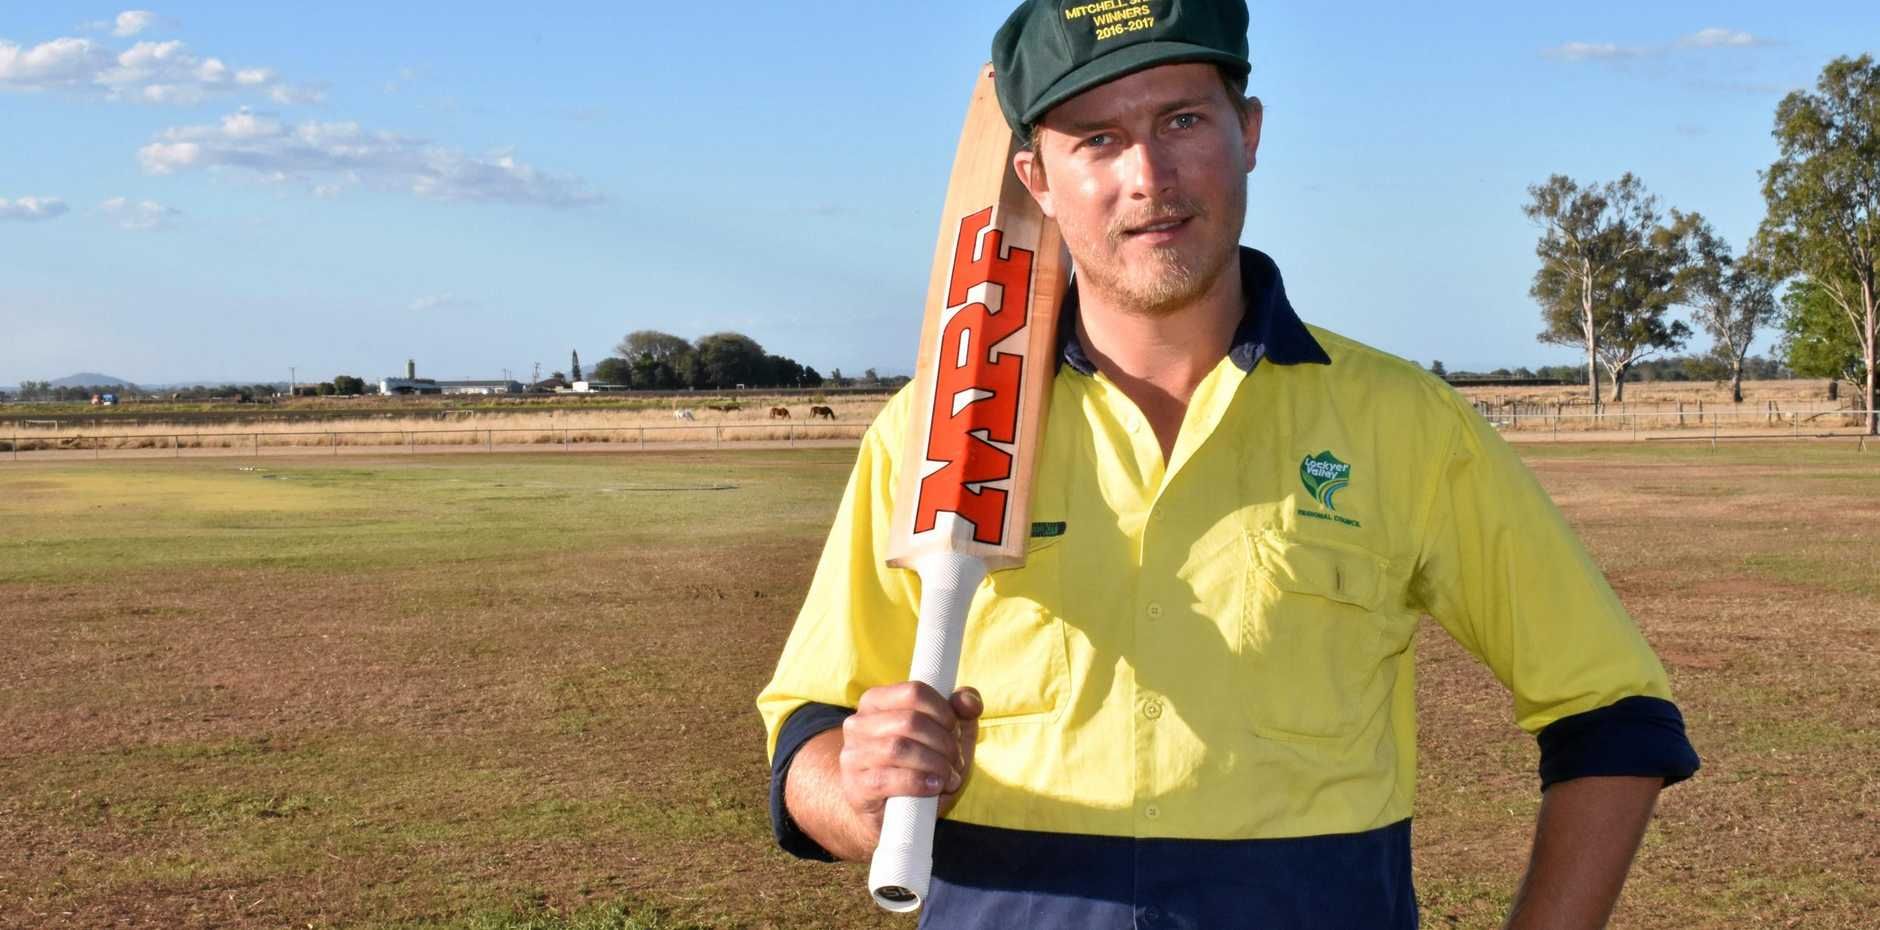 CHANCE TO IMPRESS: Lockyer Lightning captain Shanley Neuendorf was impressed with his young side as they made a successful start to their first season in the Harding-Madsen Shield against the South East Redbacks on Saturday.